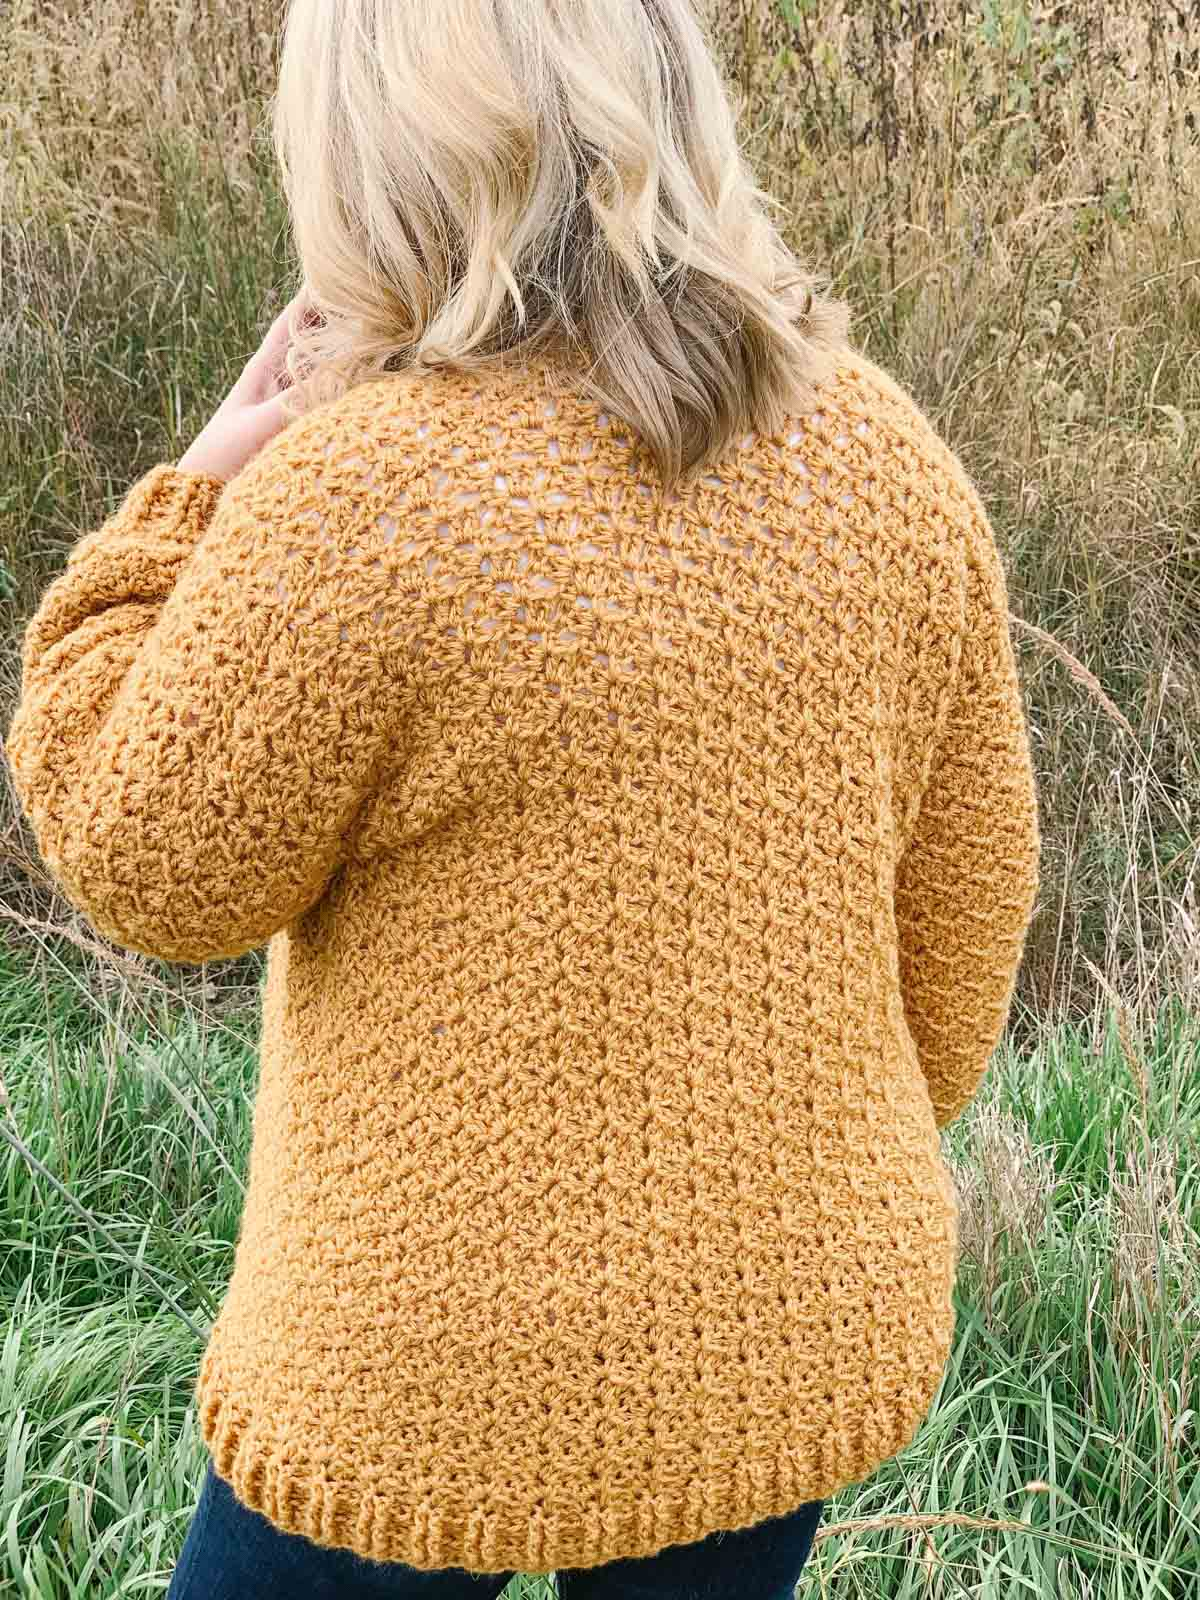 Woman with blonde hair standing in field with a mustard yellow crochet cardigan on.